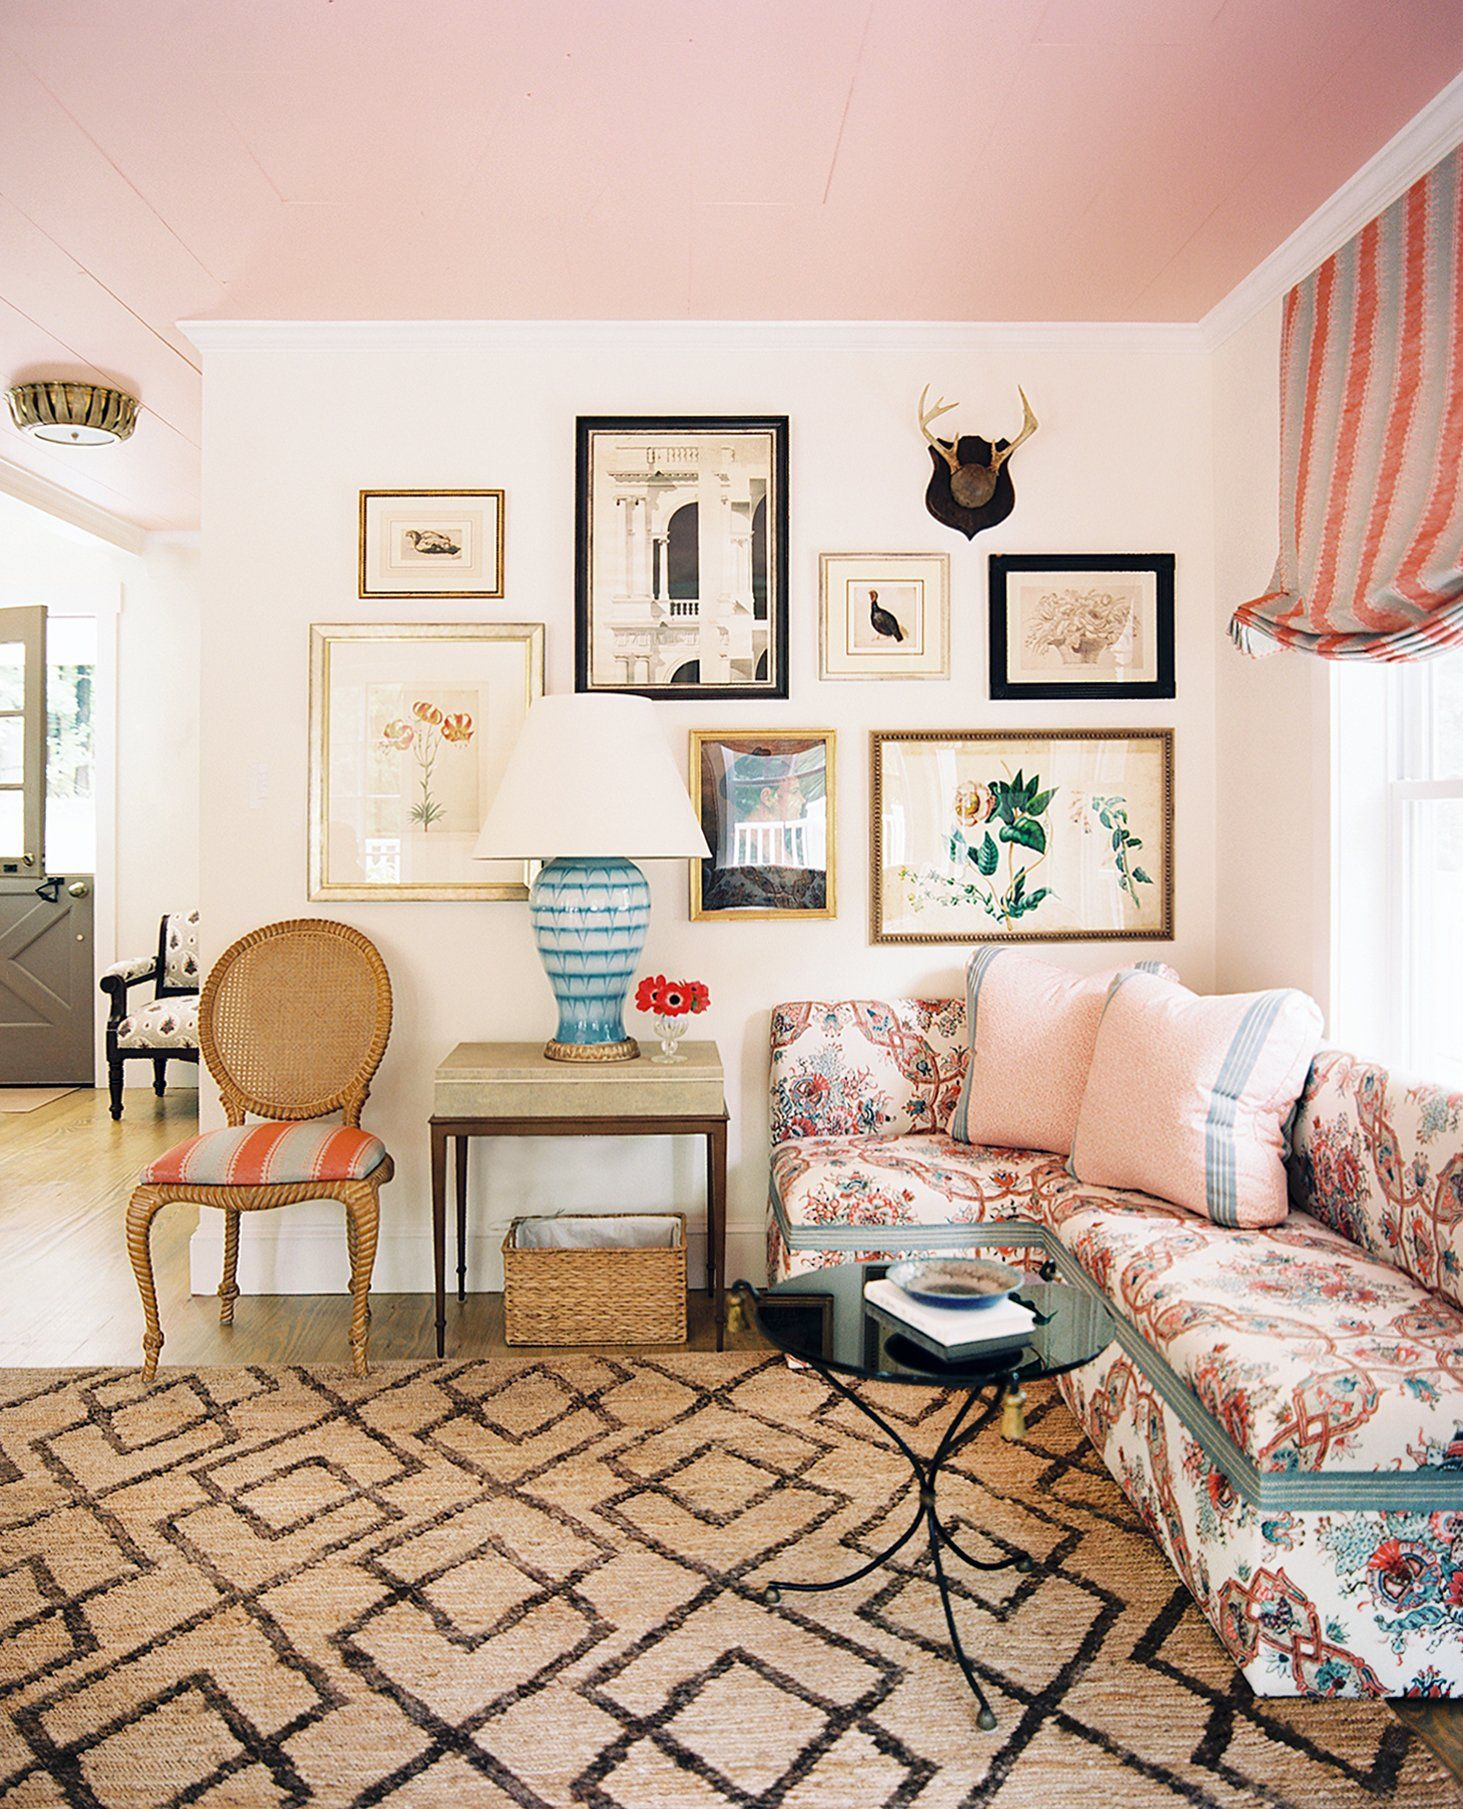 The Best Pink Paint Colors: _Vogue'_s Favorite Interior